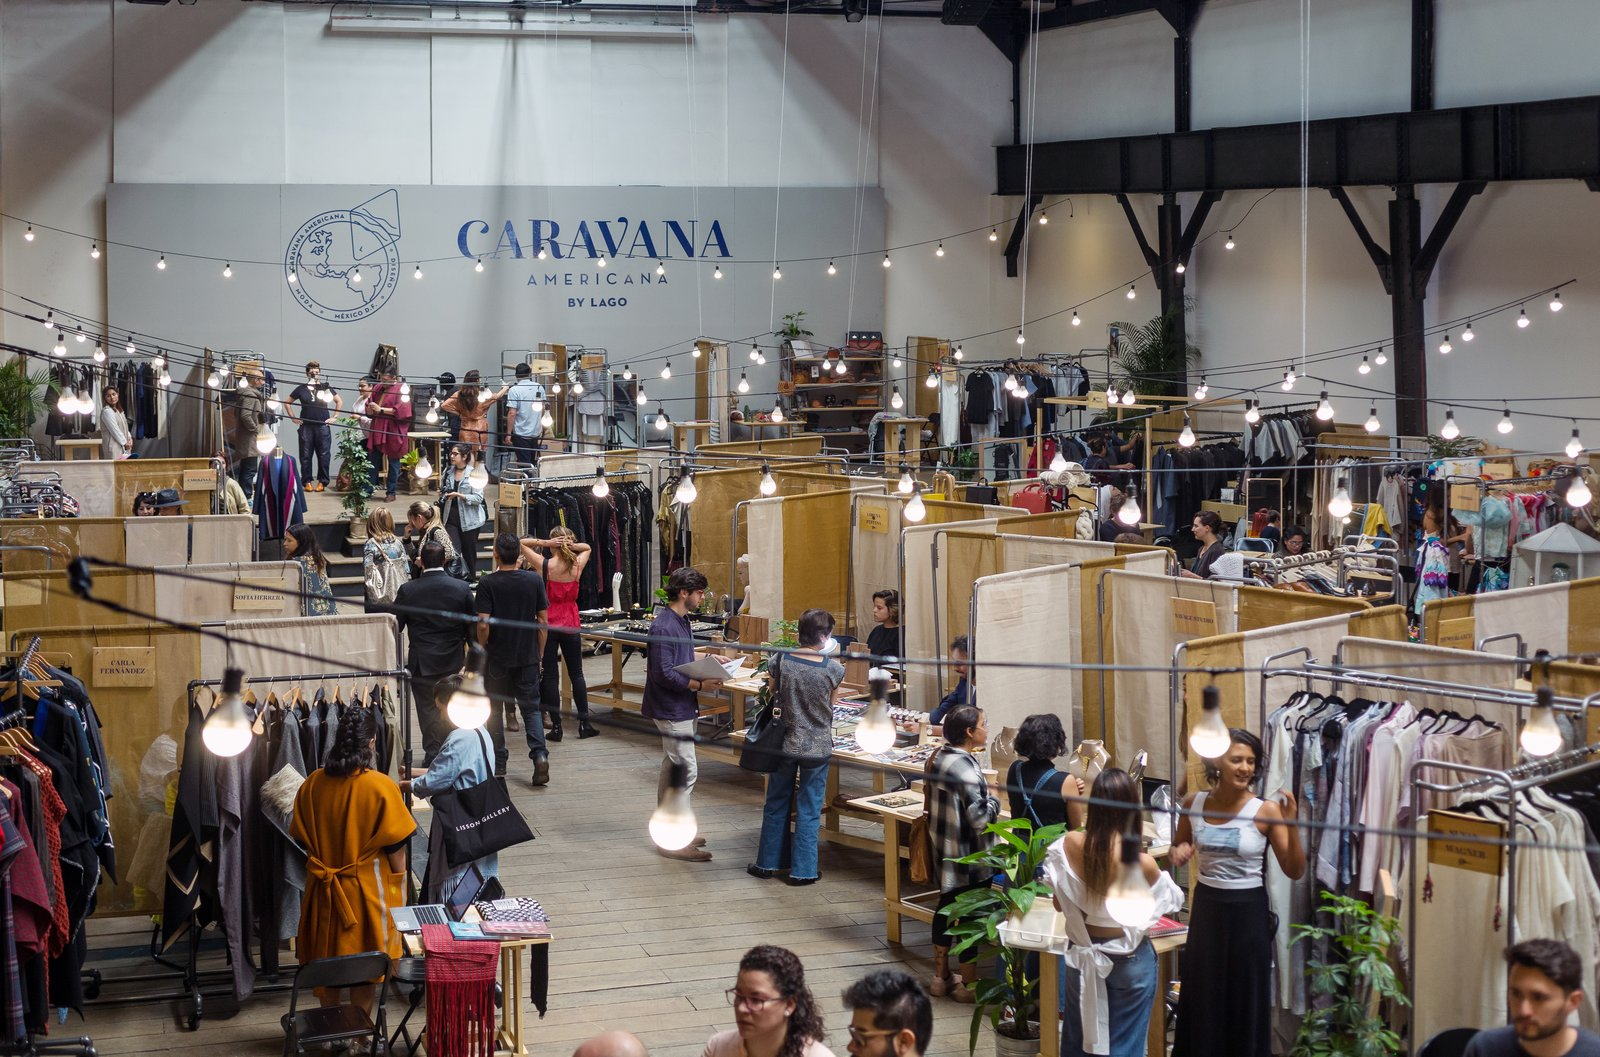 The third edition of Caravana Americana was held from March 24 to 26 on Dr. Claudio Bernard 111 in Mexico City. The industrial space was formerly home to a working tram terminal and still holds original turbines that were in working condition until the '50s. The floor below holds a printing press and hosts talks, exhibits, and other events.